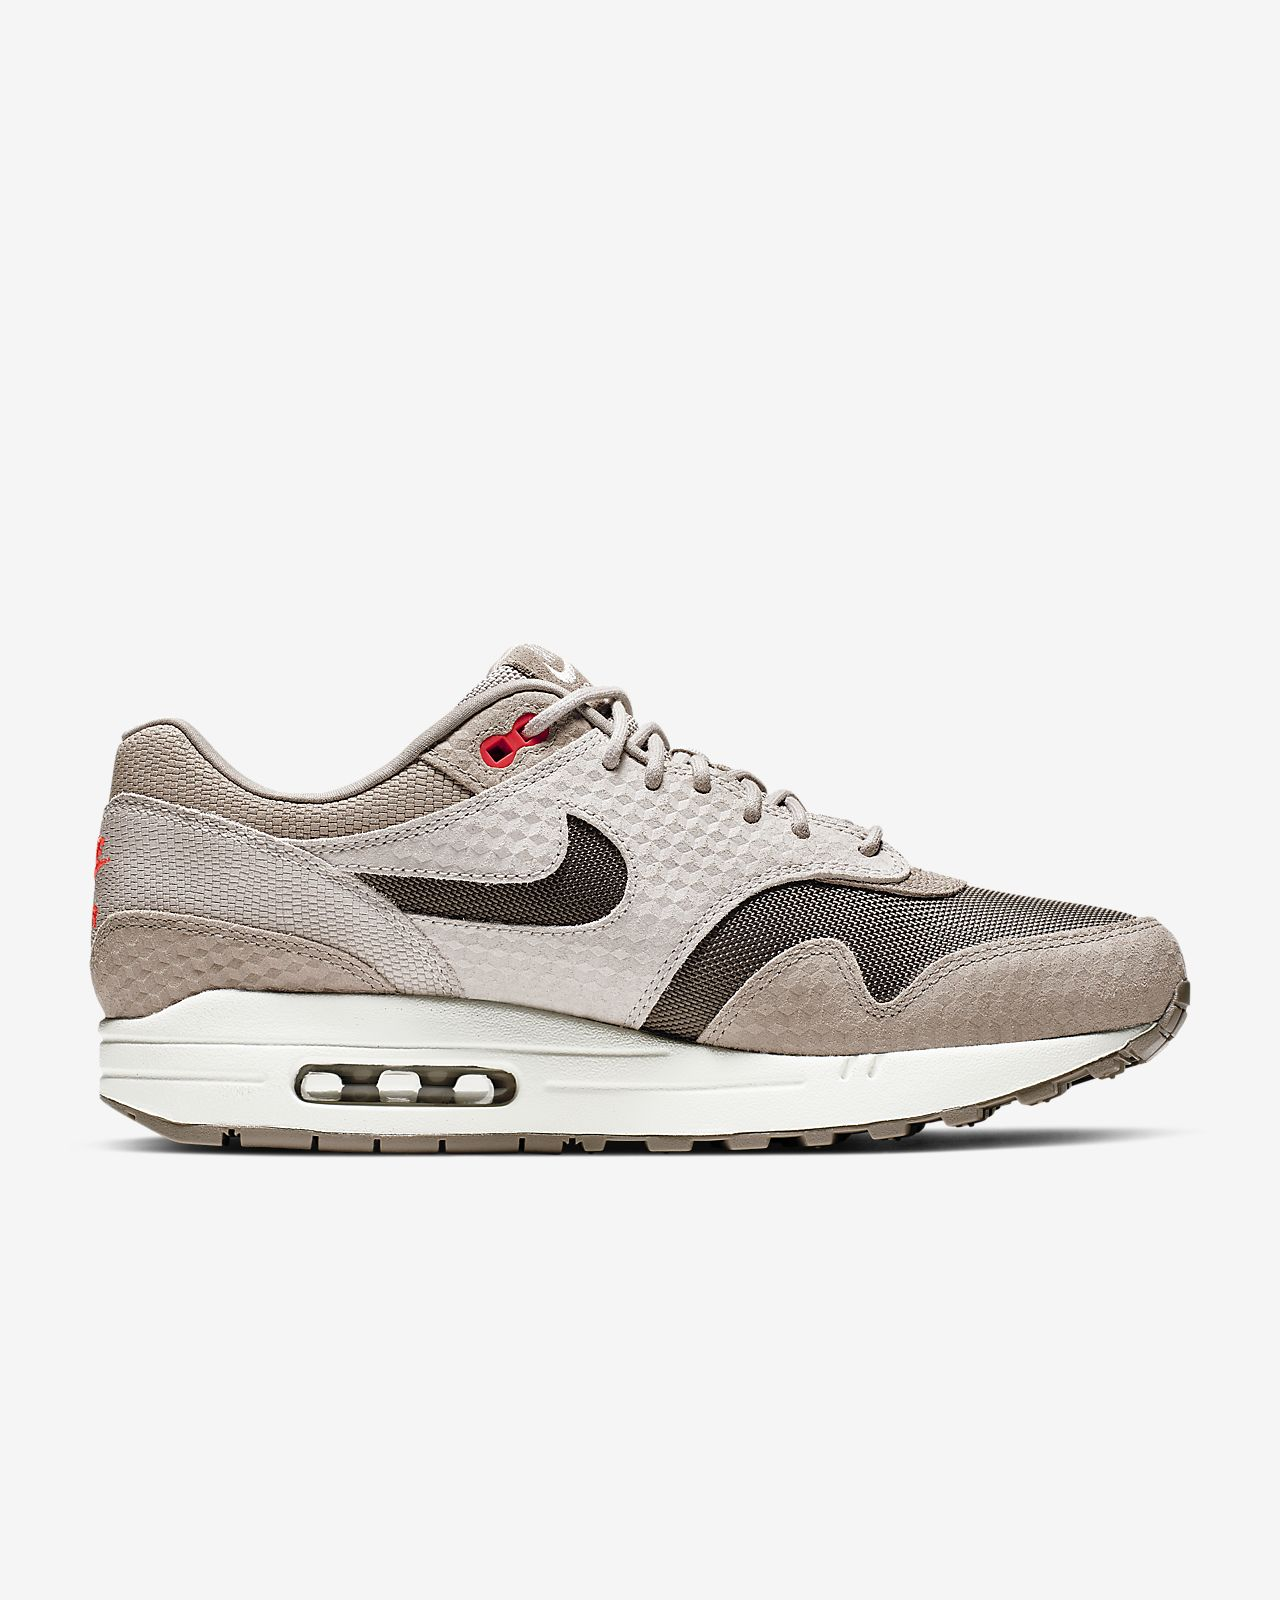 Nike Air Max 1 Premium Men's Shoe